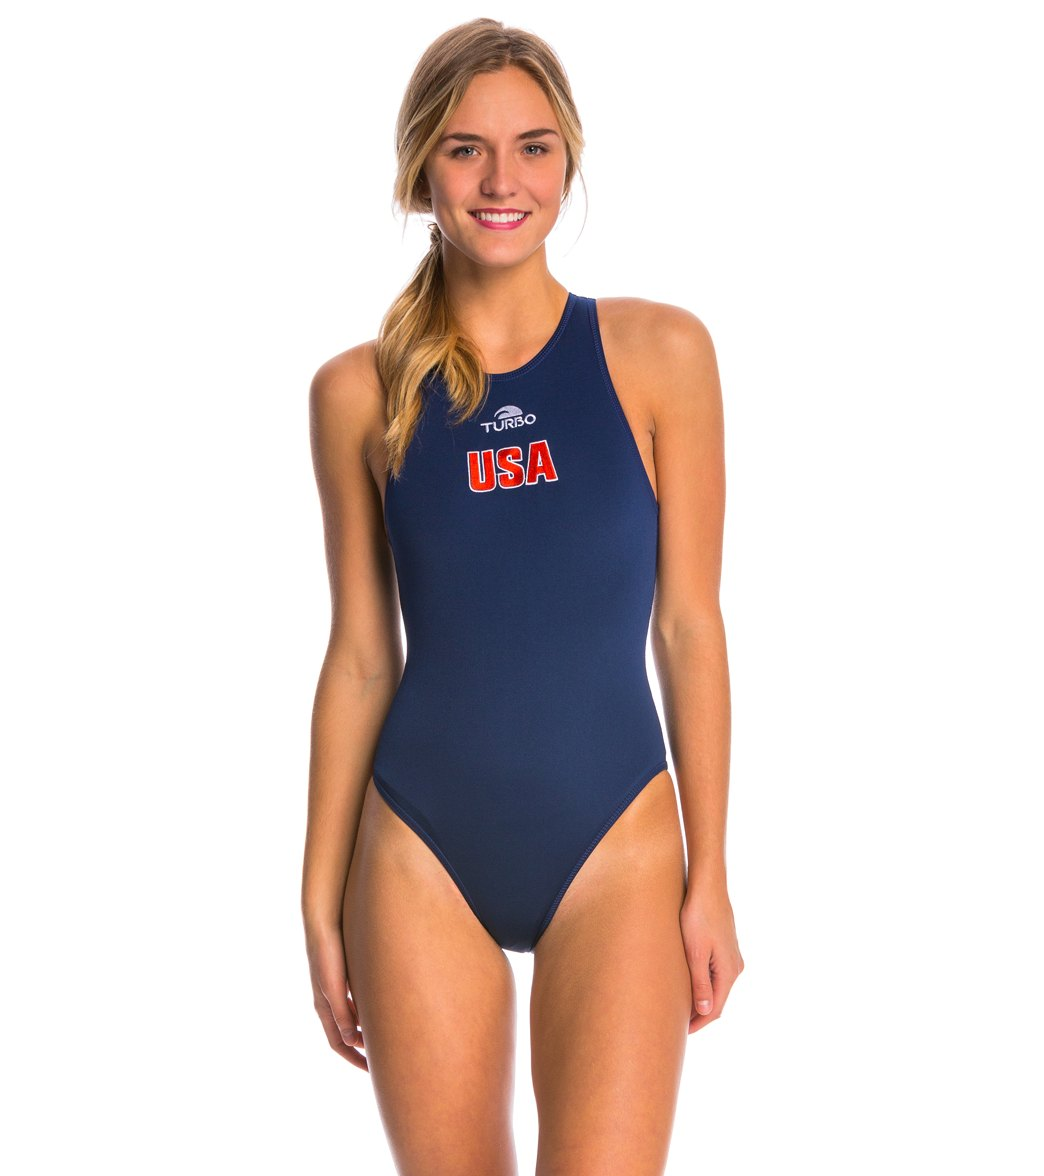 Turbo Team USA Women s Olympic Comfort Water Polo Suit at SwimOutlet.com -  Free Shipping 3b5e8c99da